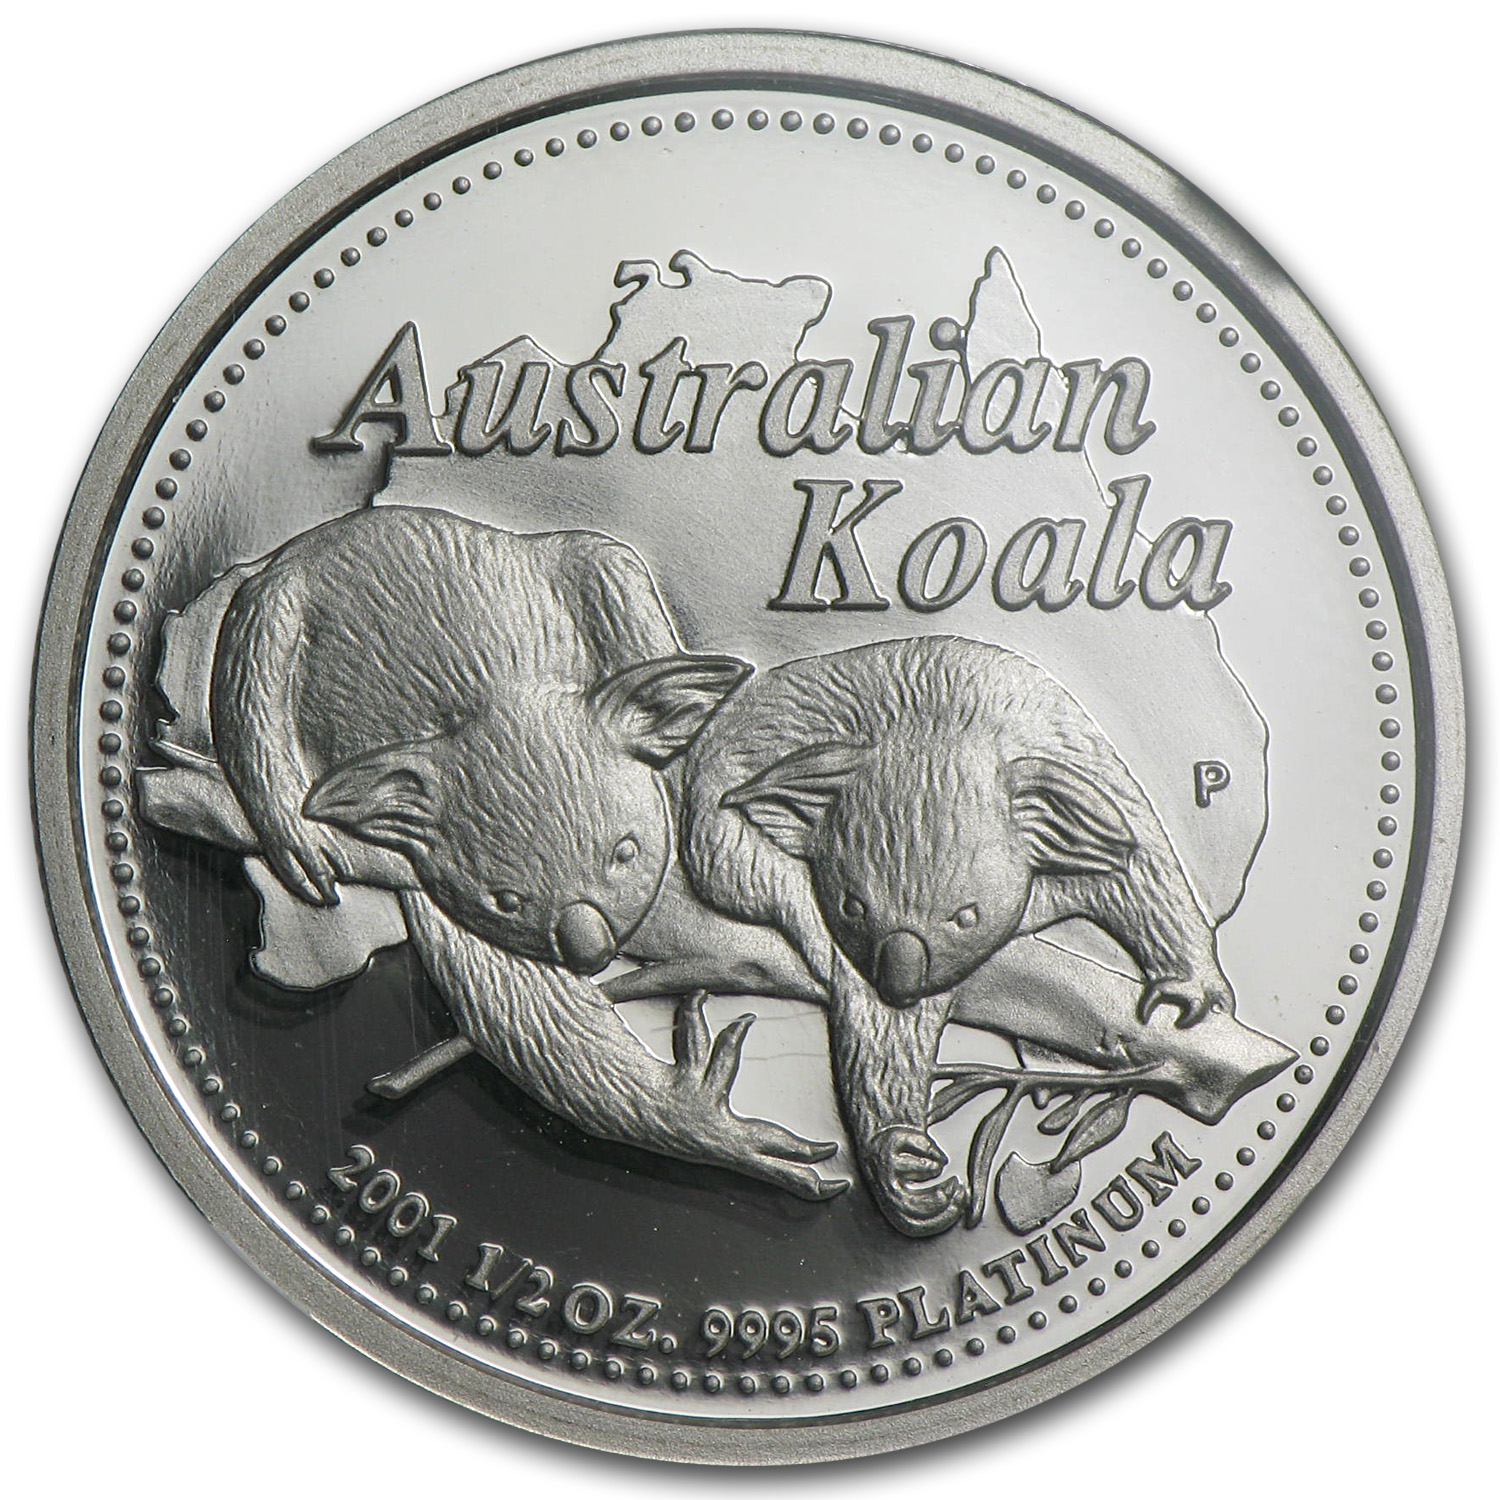 2001 Australia 1/2 oz Proof Platinum Koala PF-70 NGC